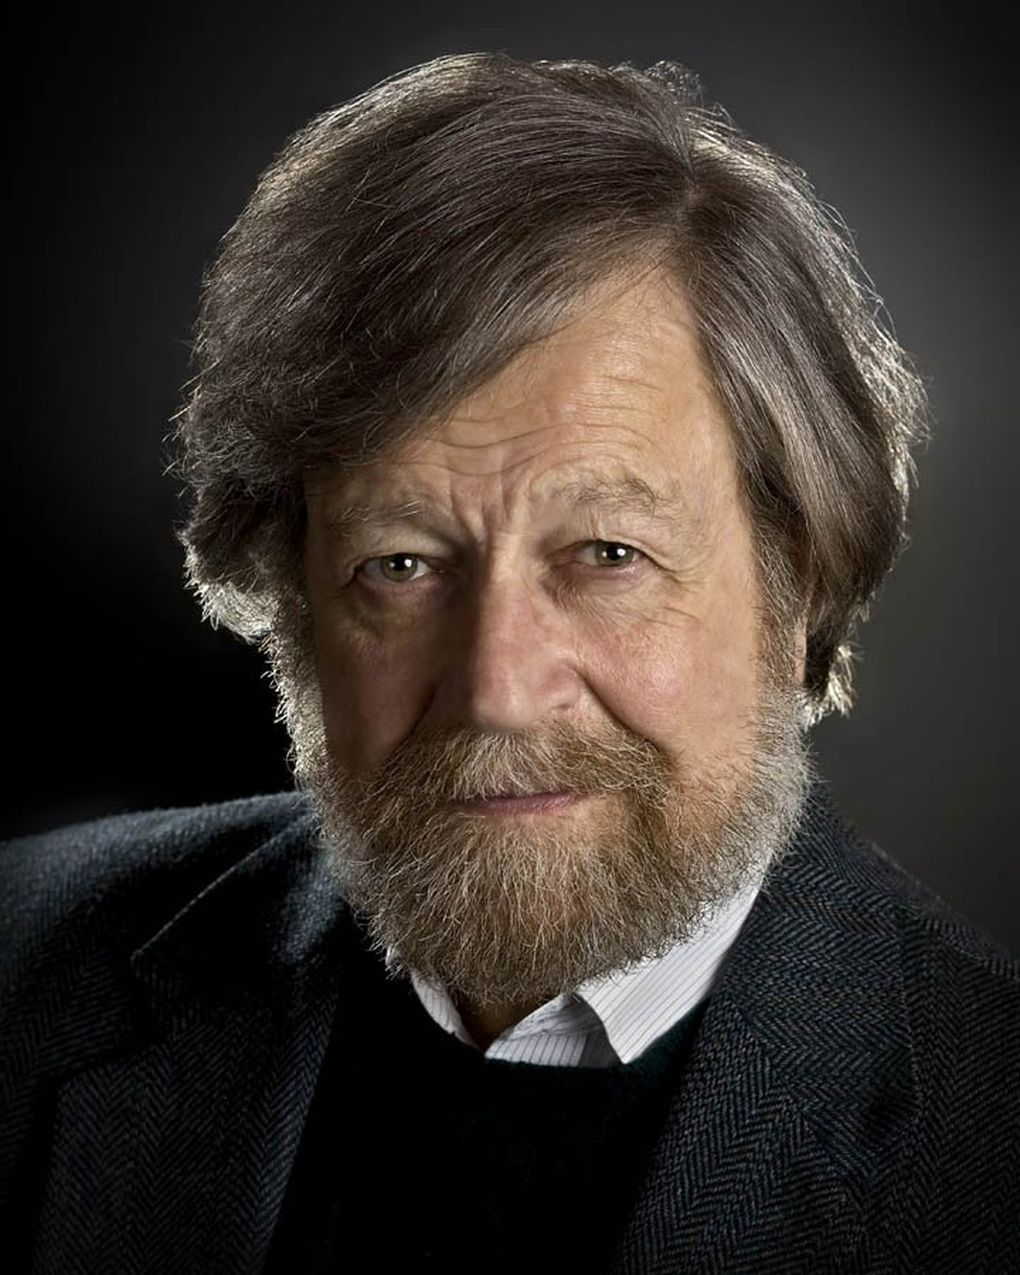 """""""I'm trying to write music that goes very deep into other people's hearts,"""" says composer Morten Lauridsen. (Courtesy of Morten Lauridsen)"""